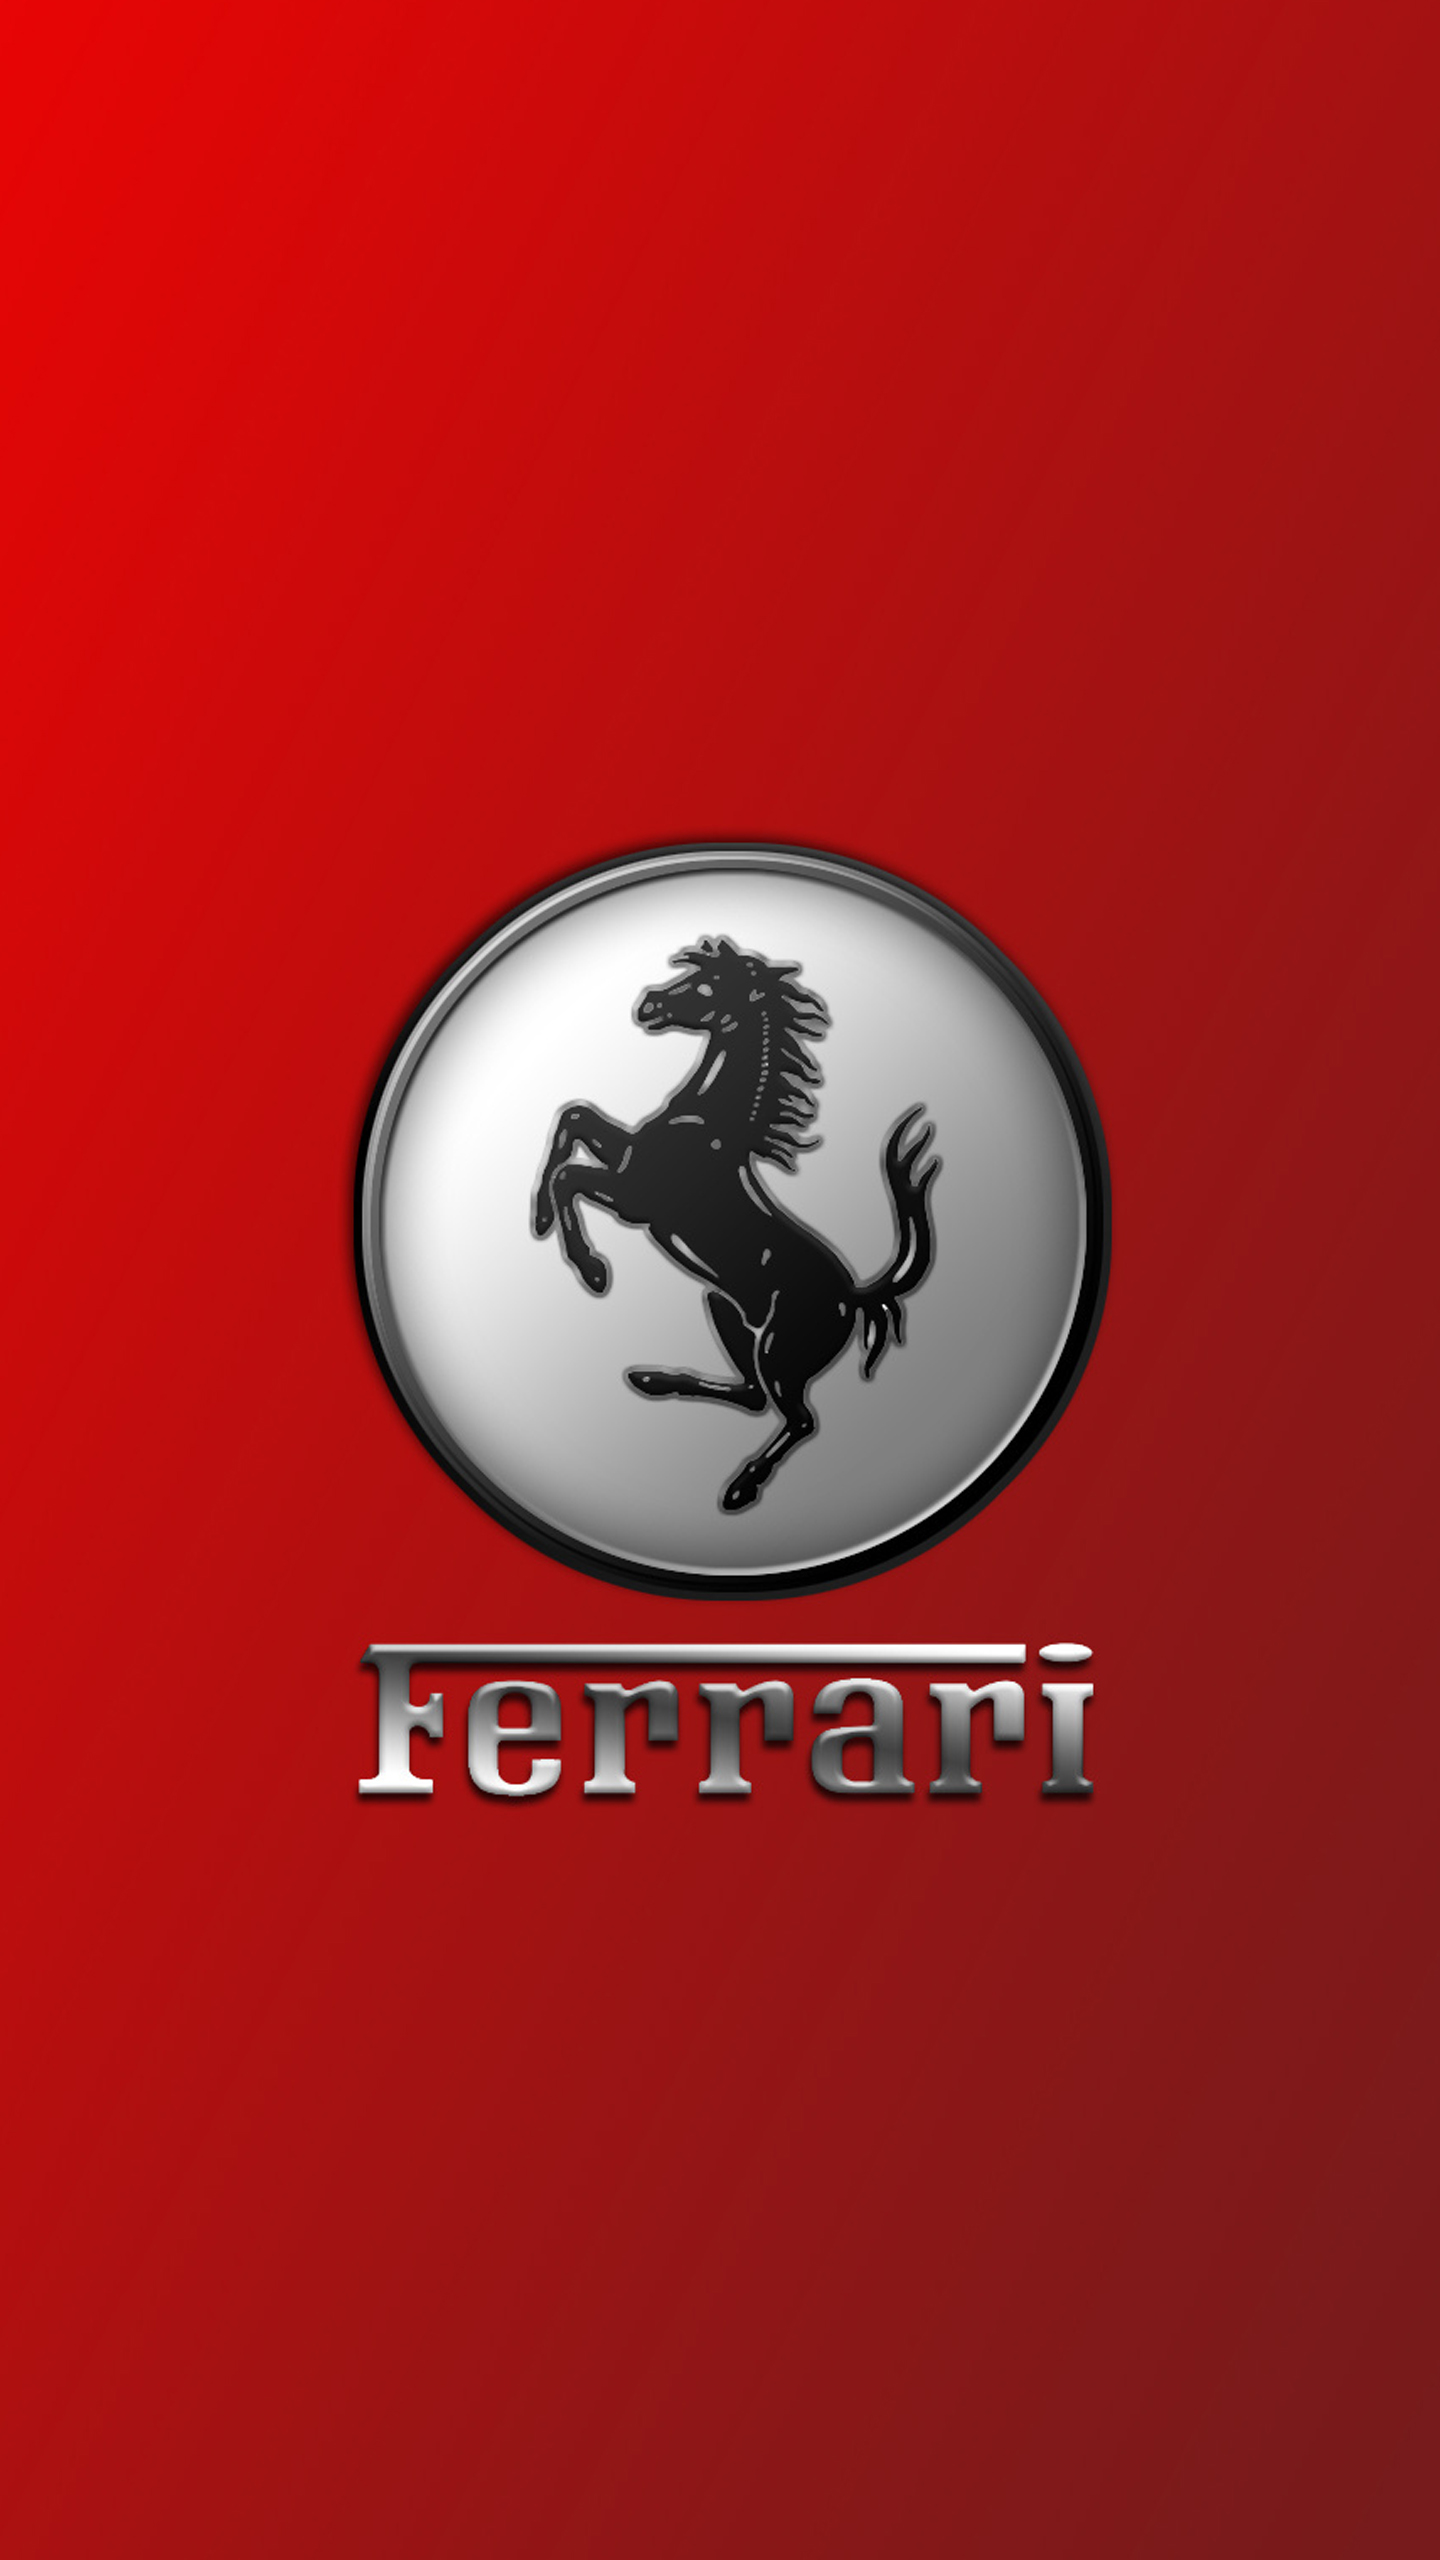 Photo Collection Alcatel Android Wallpaper Iphone Ferrari Logo 1440x2560 Download Hd Wallpaper Wallpapertip